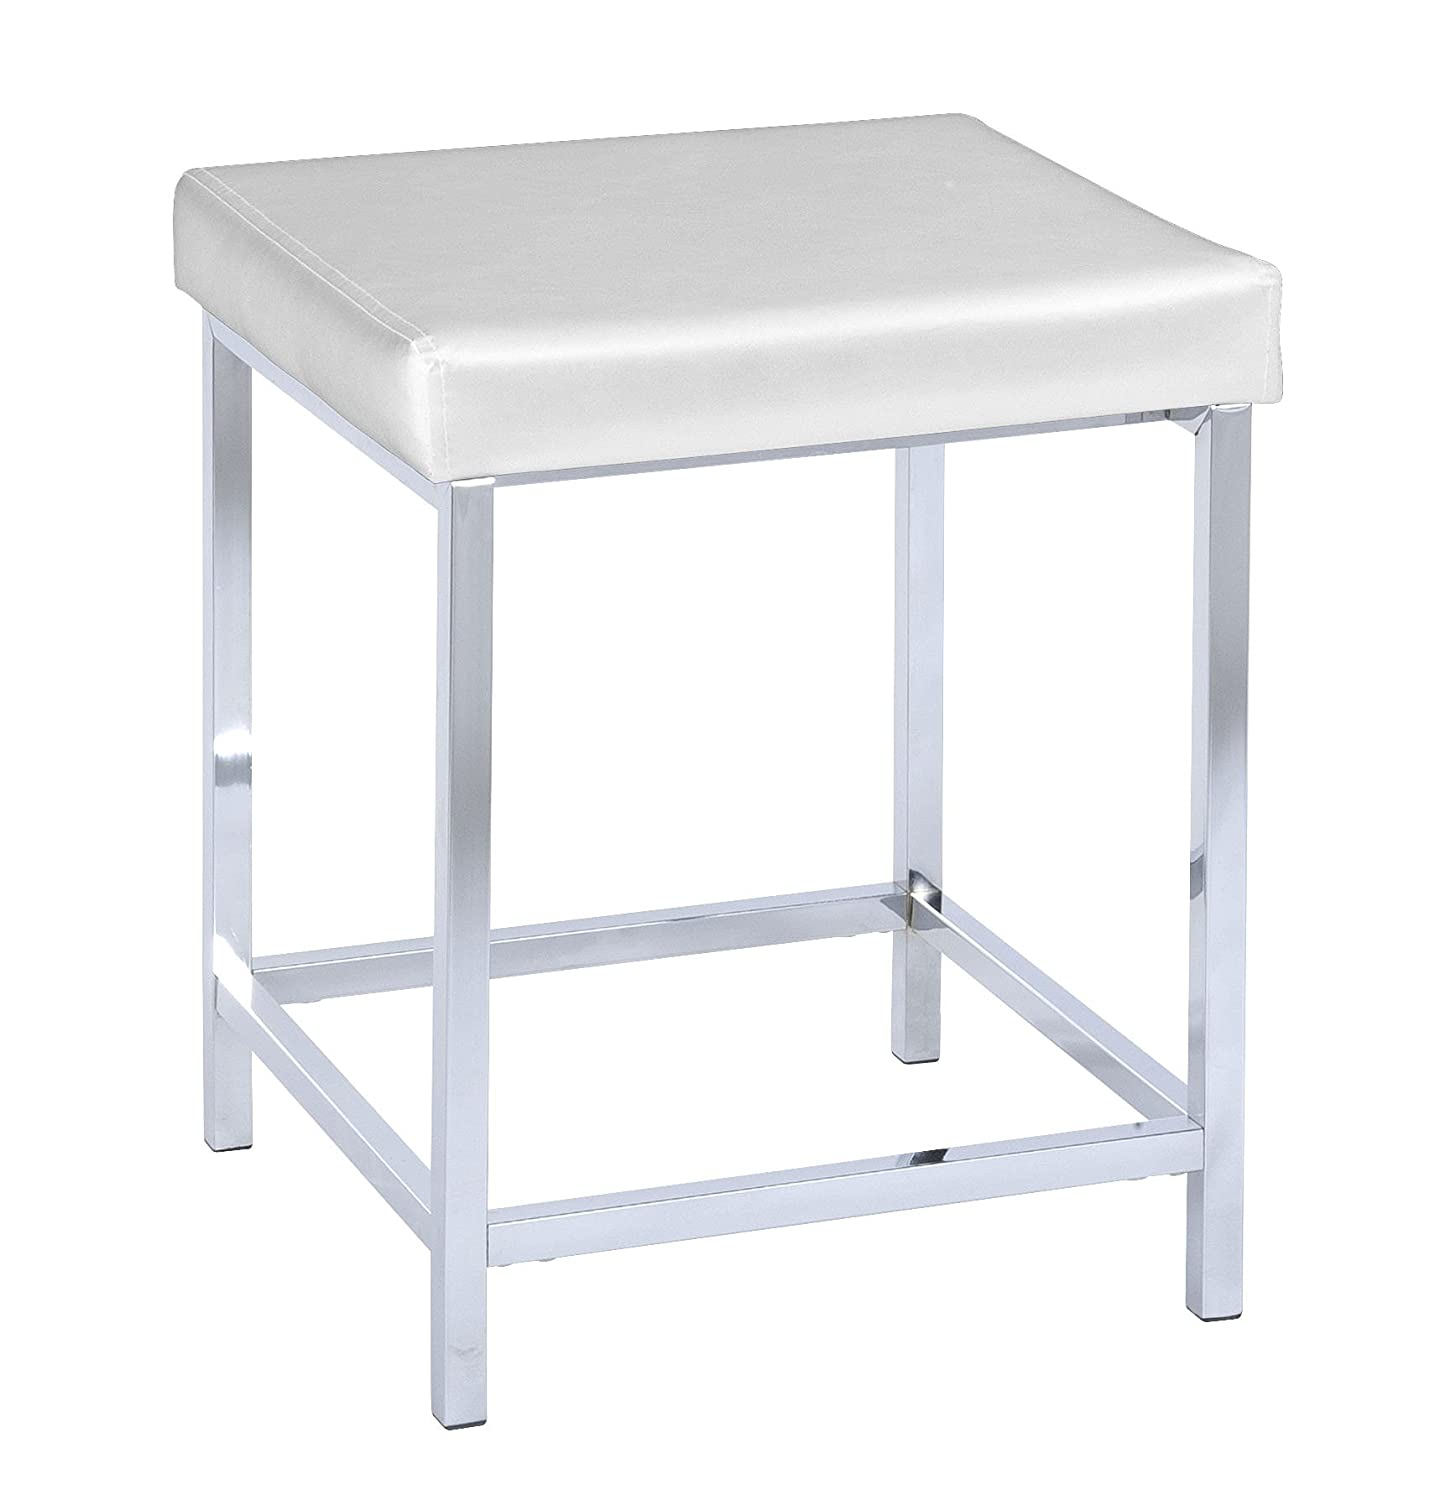 Badhocker wenko  Amazon.de: WENKO 19943100 Hocker Deluxe Square White - Badhocker ...